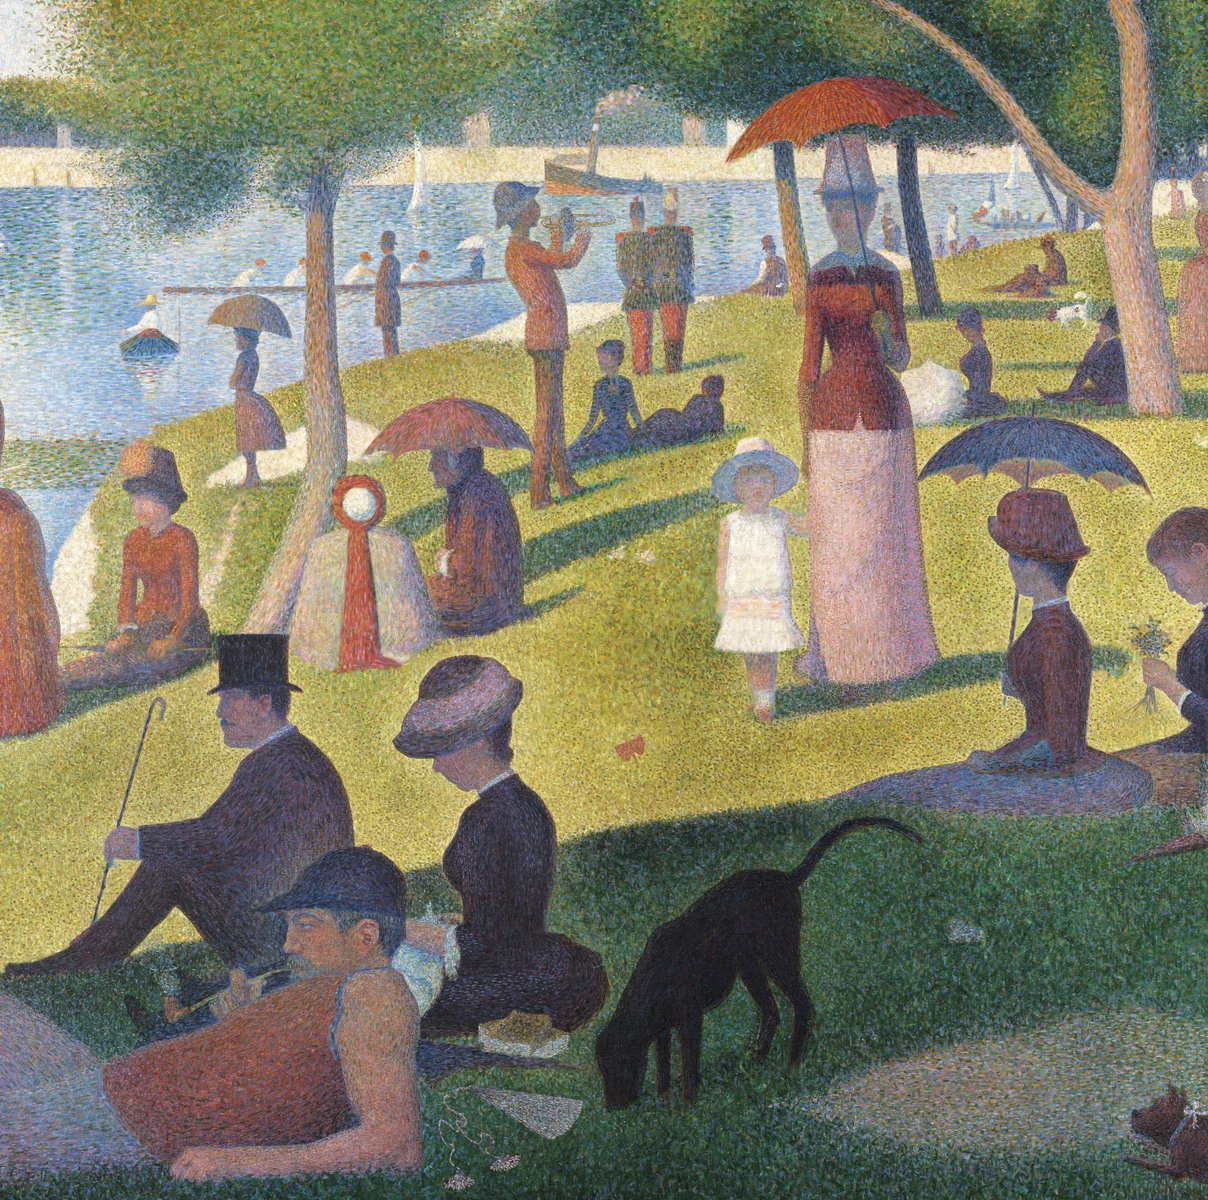 JP London SQM2249PS uStrip Peel and Stick Seurat Removable Wall Decal Sticker Mural A Sunday On La Grande Jatte at 6 High by 6 Wide